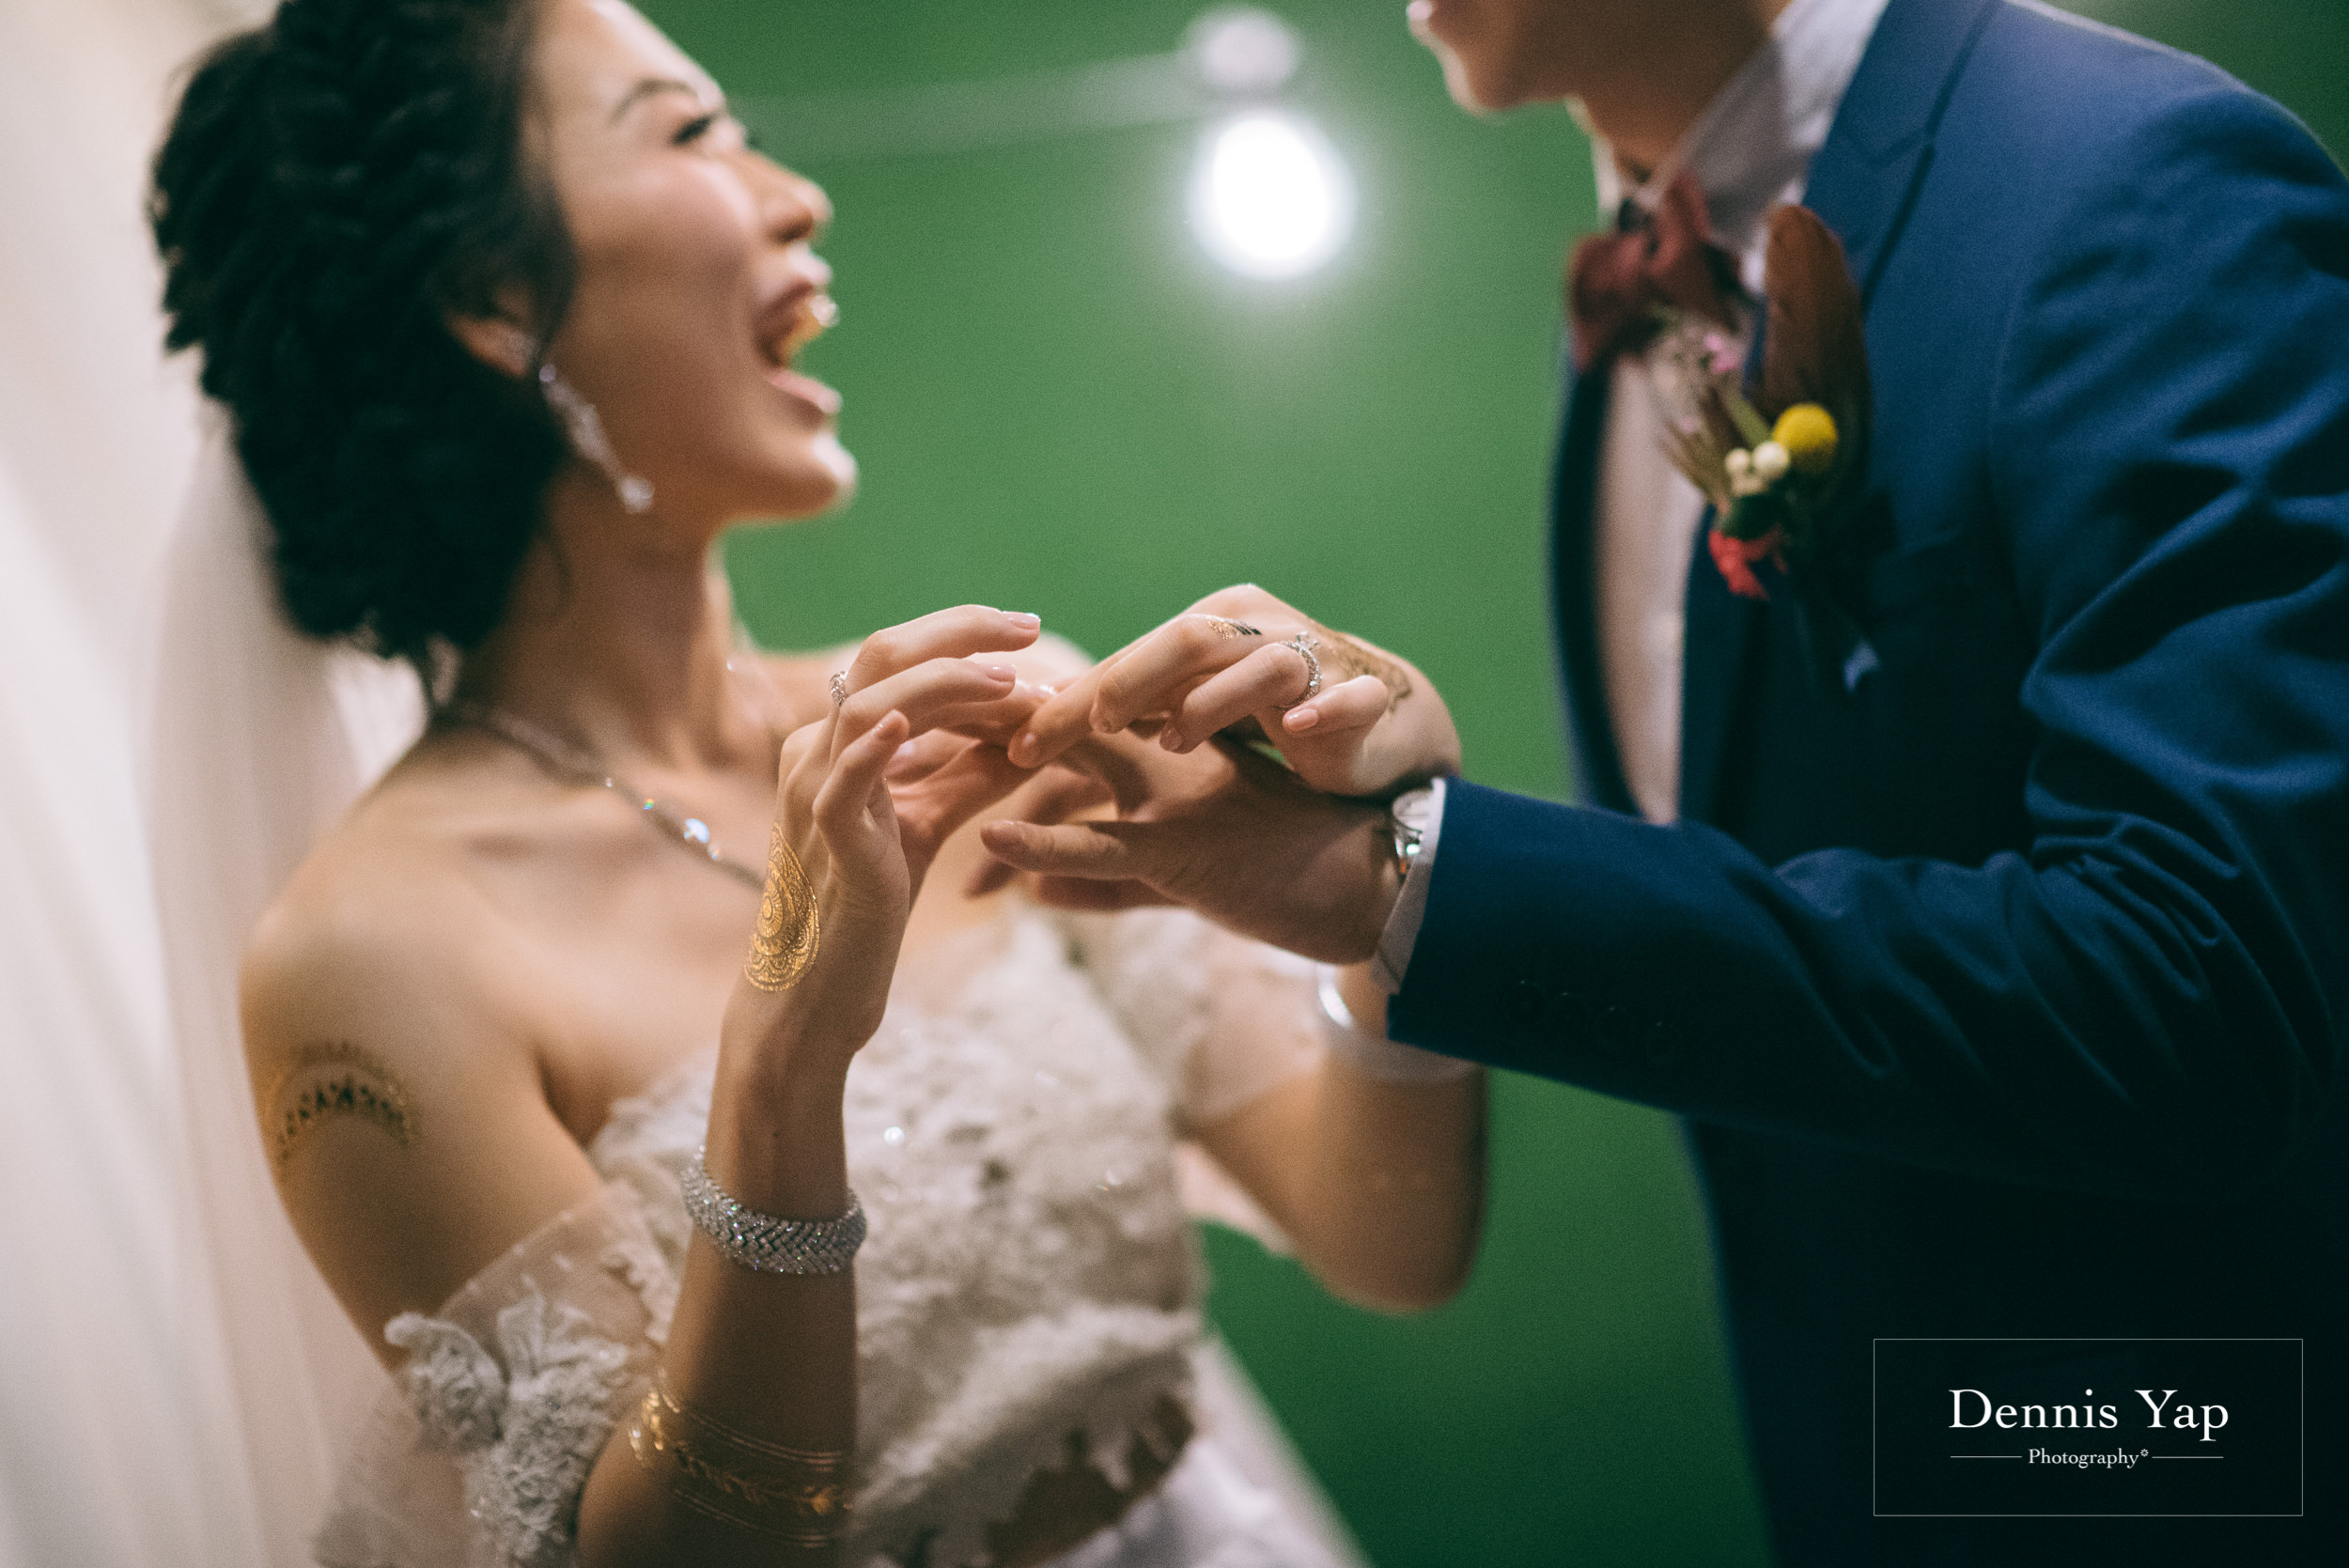 ser siang sze liang rom registration of marriage KL journal hotel dennis yap photography-23.jpg